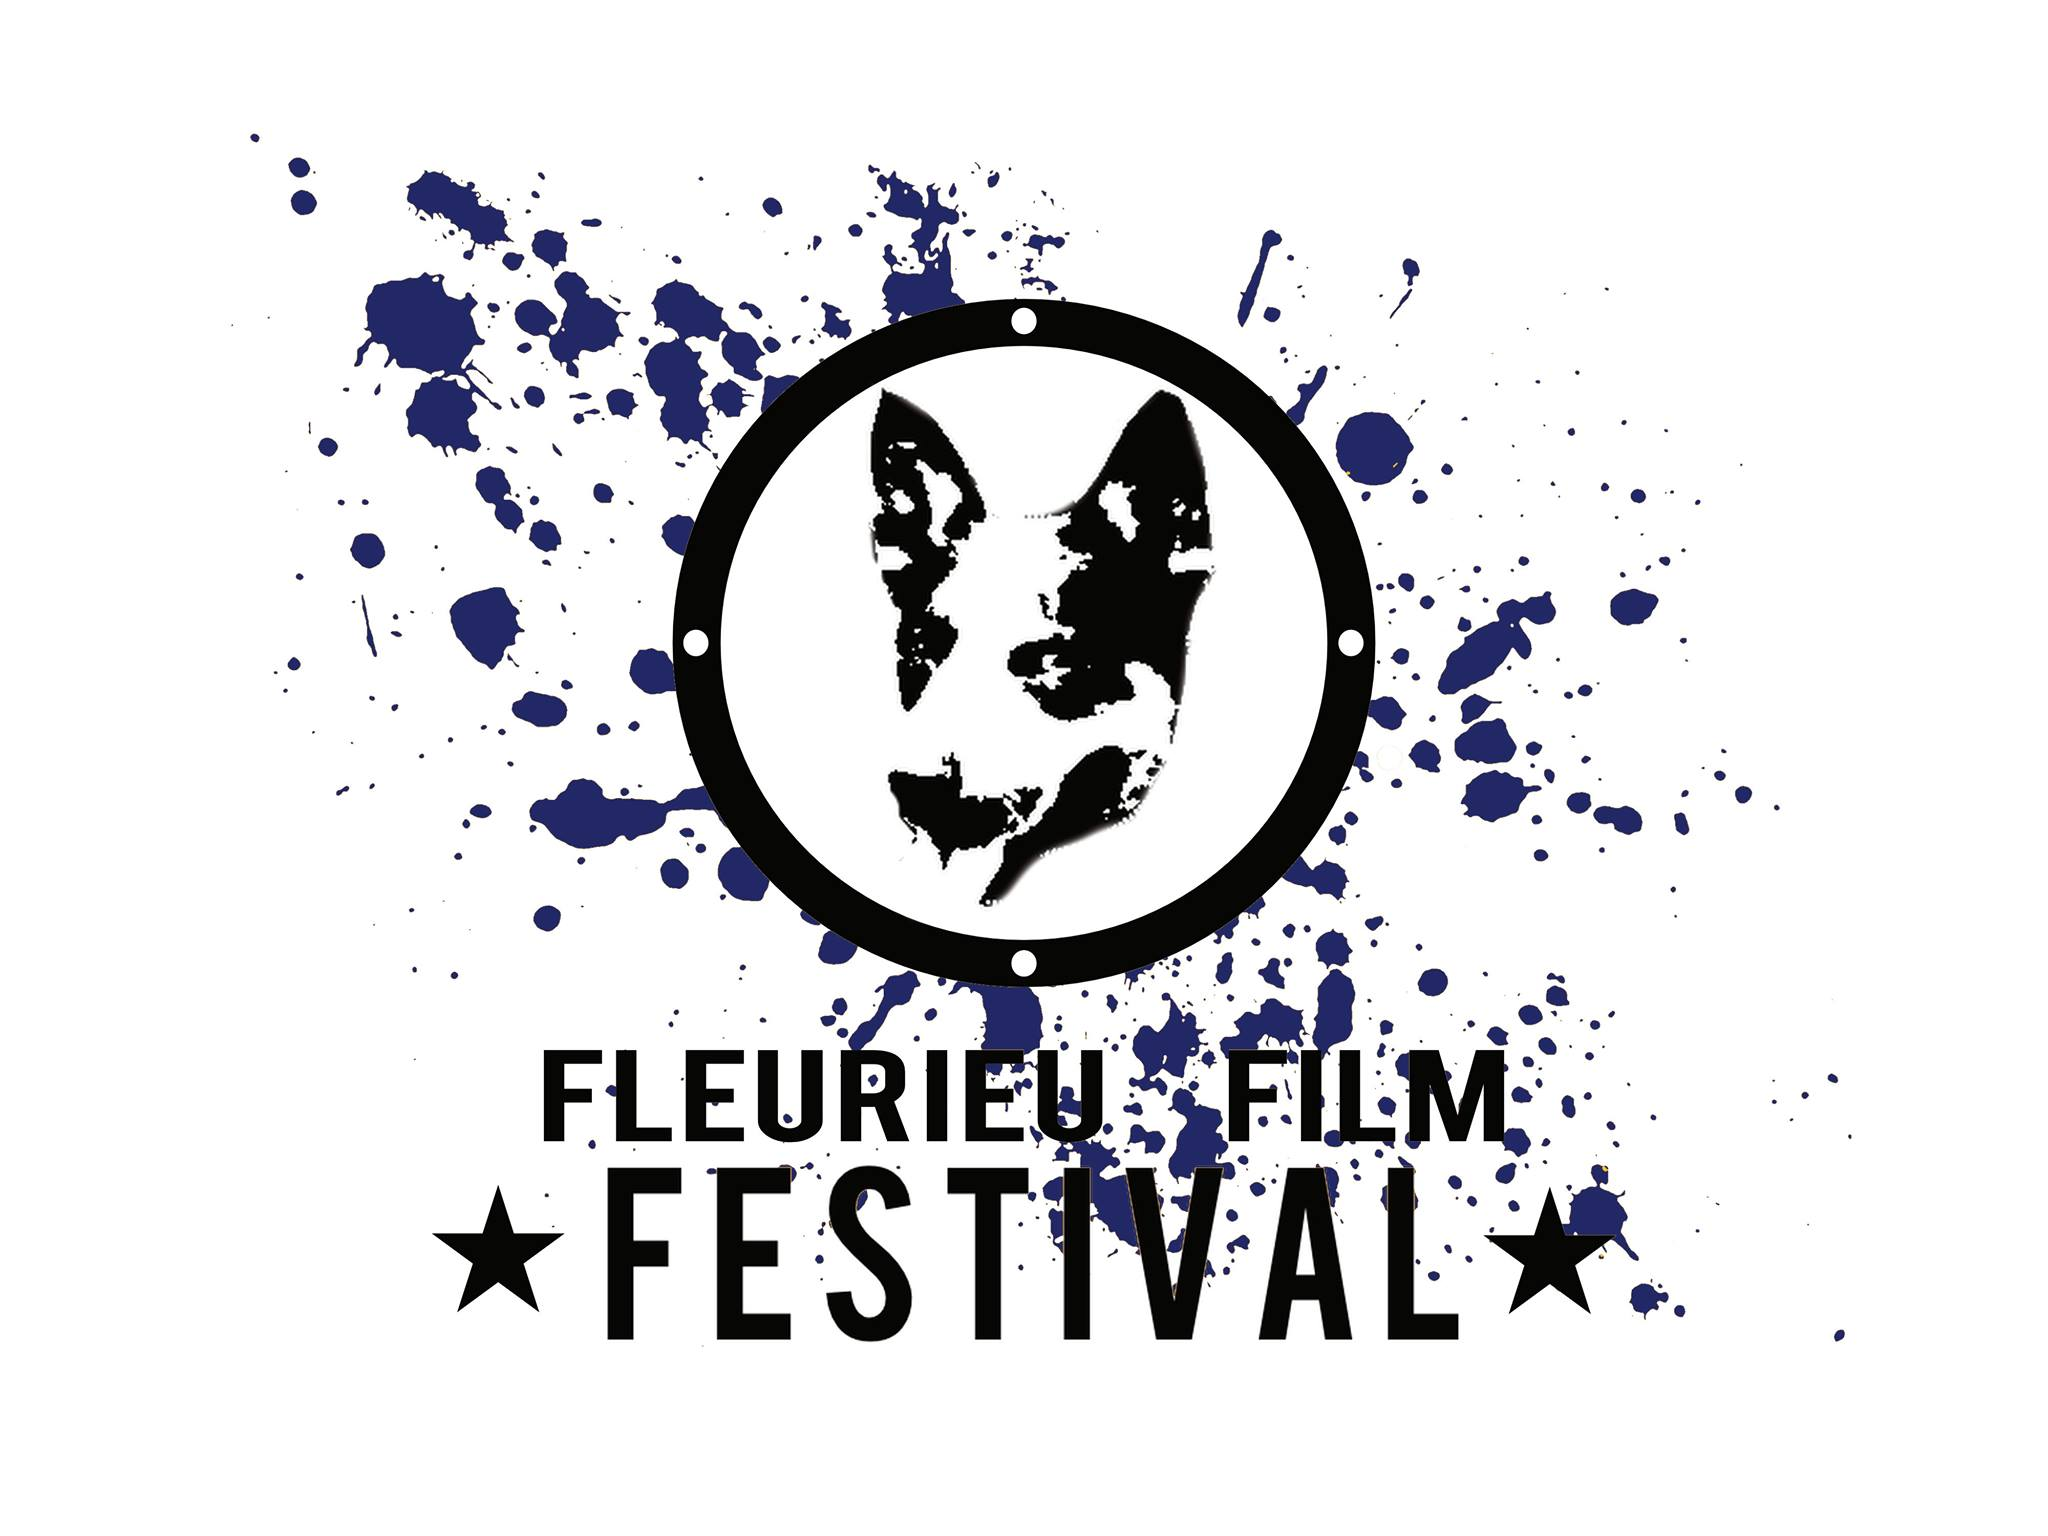 Fleurieu Film Festival Logo and Images